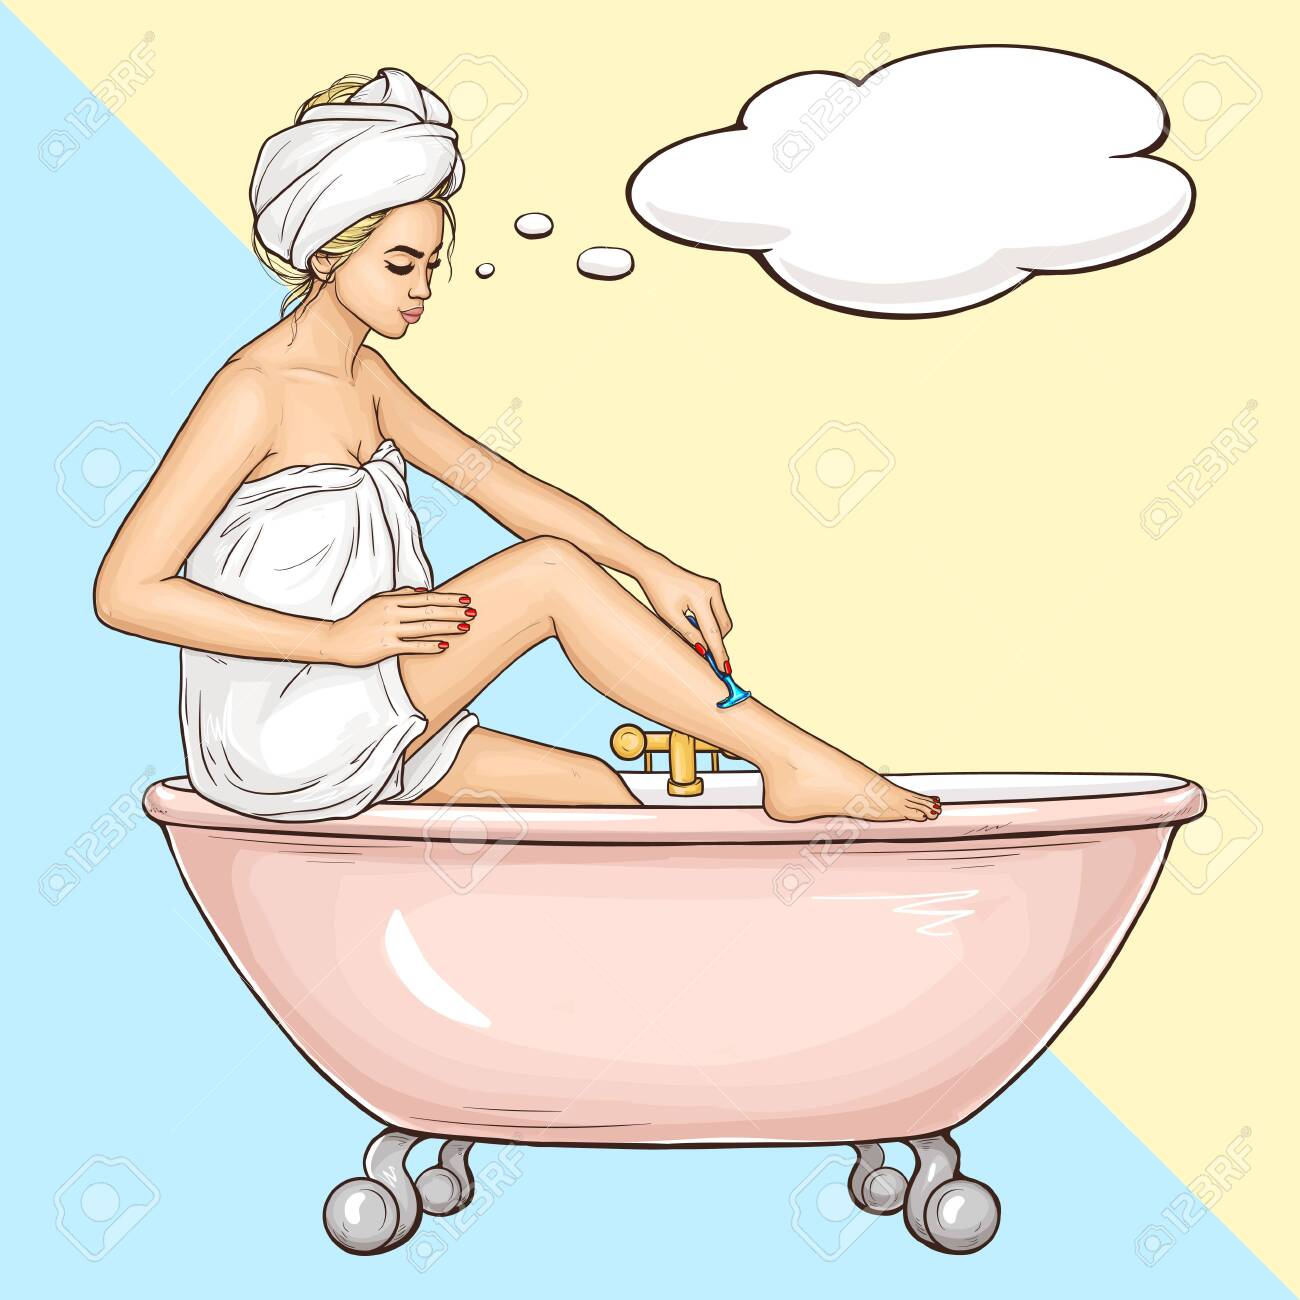 Women Hygiene And Beauty Body Care Cosmetics Pop Art Vector Royalty Free Cliparts Vectors And Stock Illustration Image 137886058